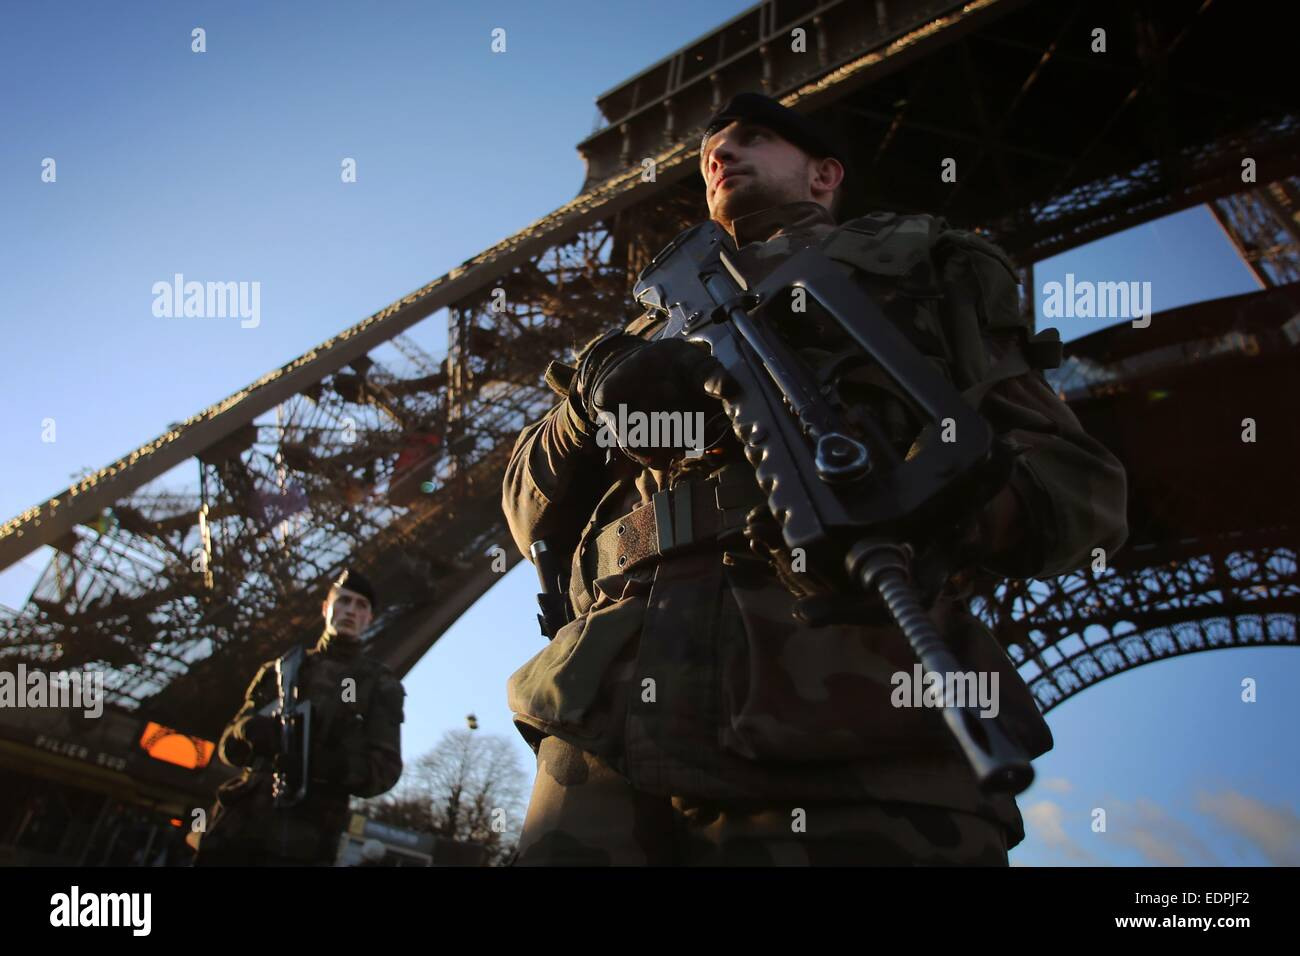 Paris, France. 8th Jan, 2015. Heavily armored soldiers guard the Eiffel Tower in Paris, France, 8 January 2015. Stock Photo